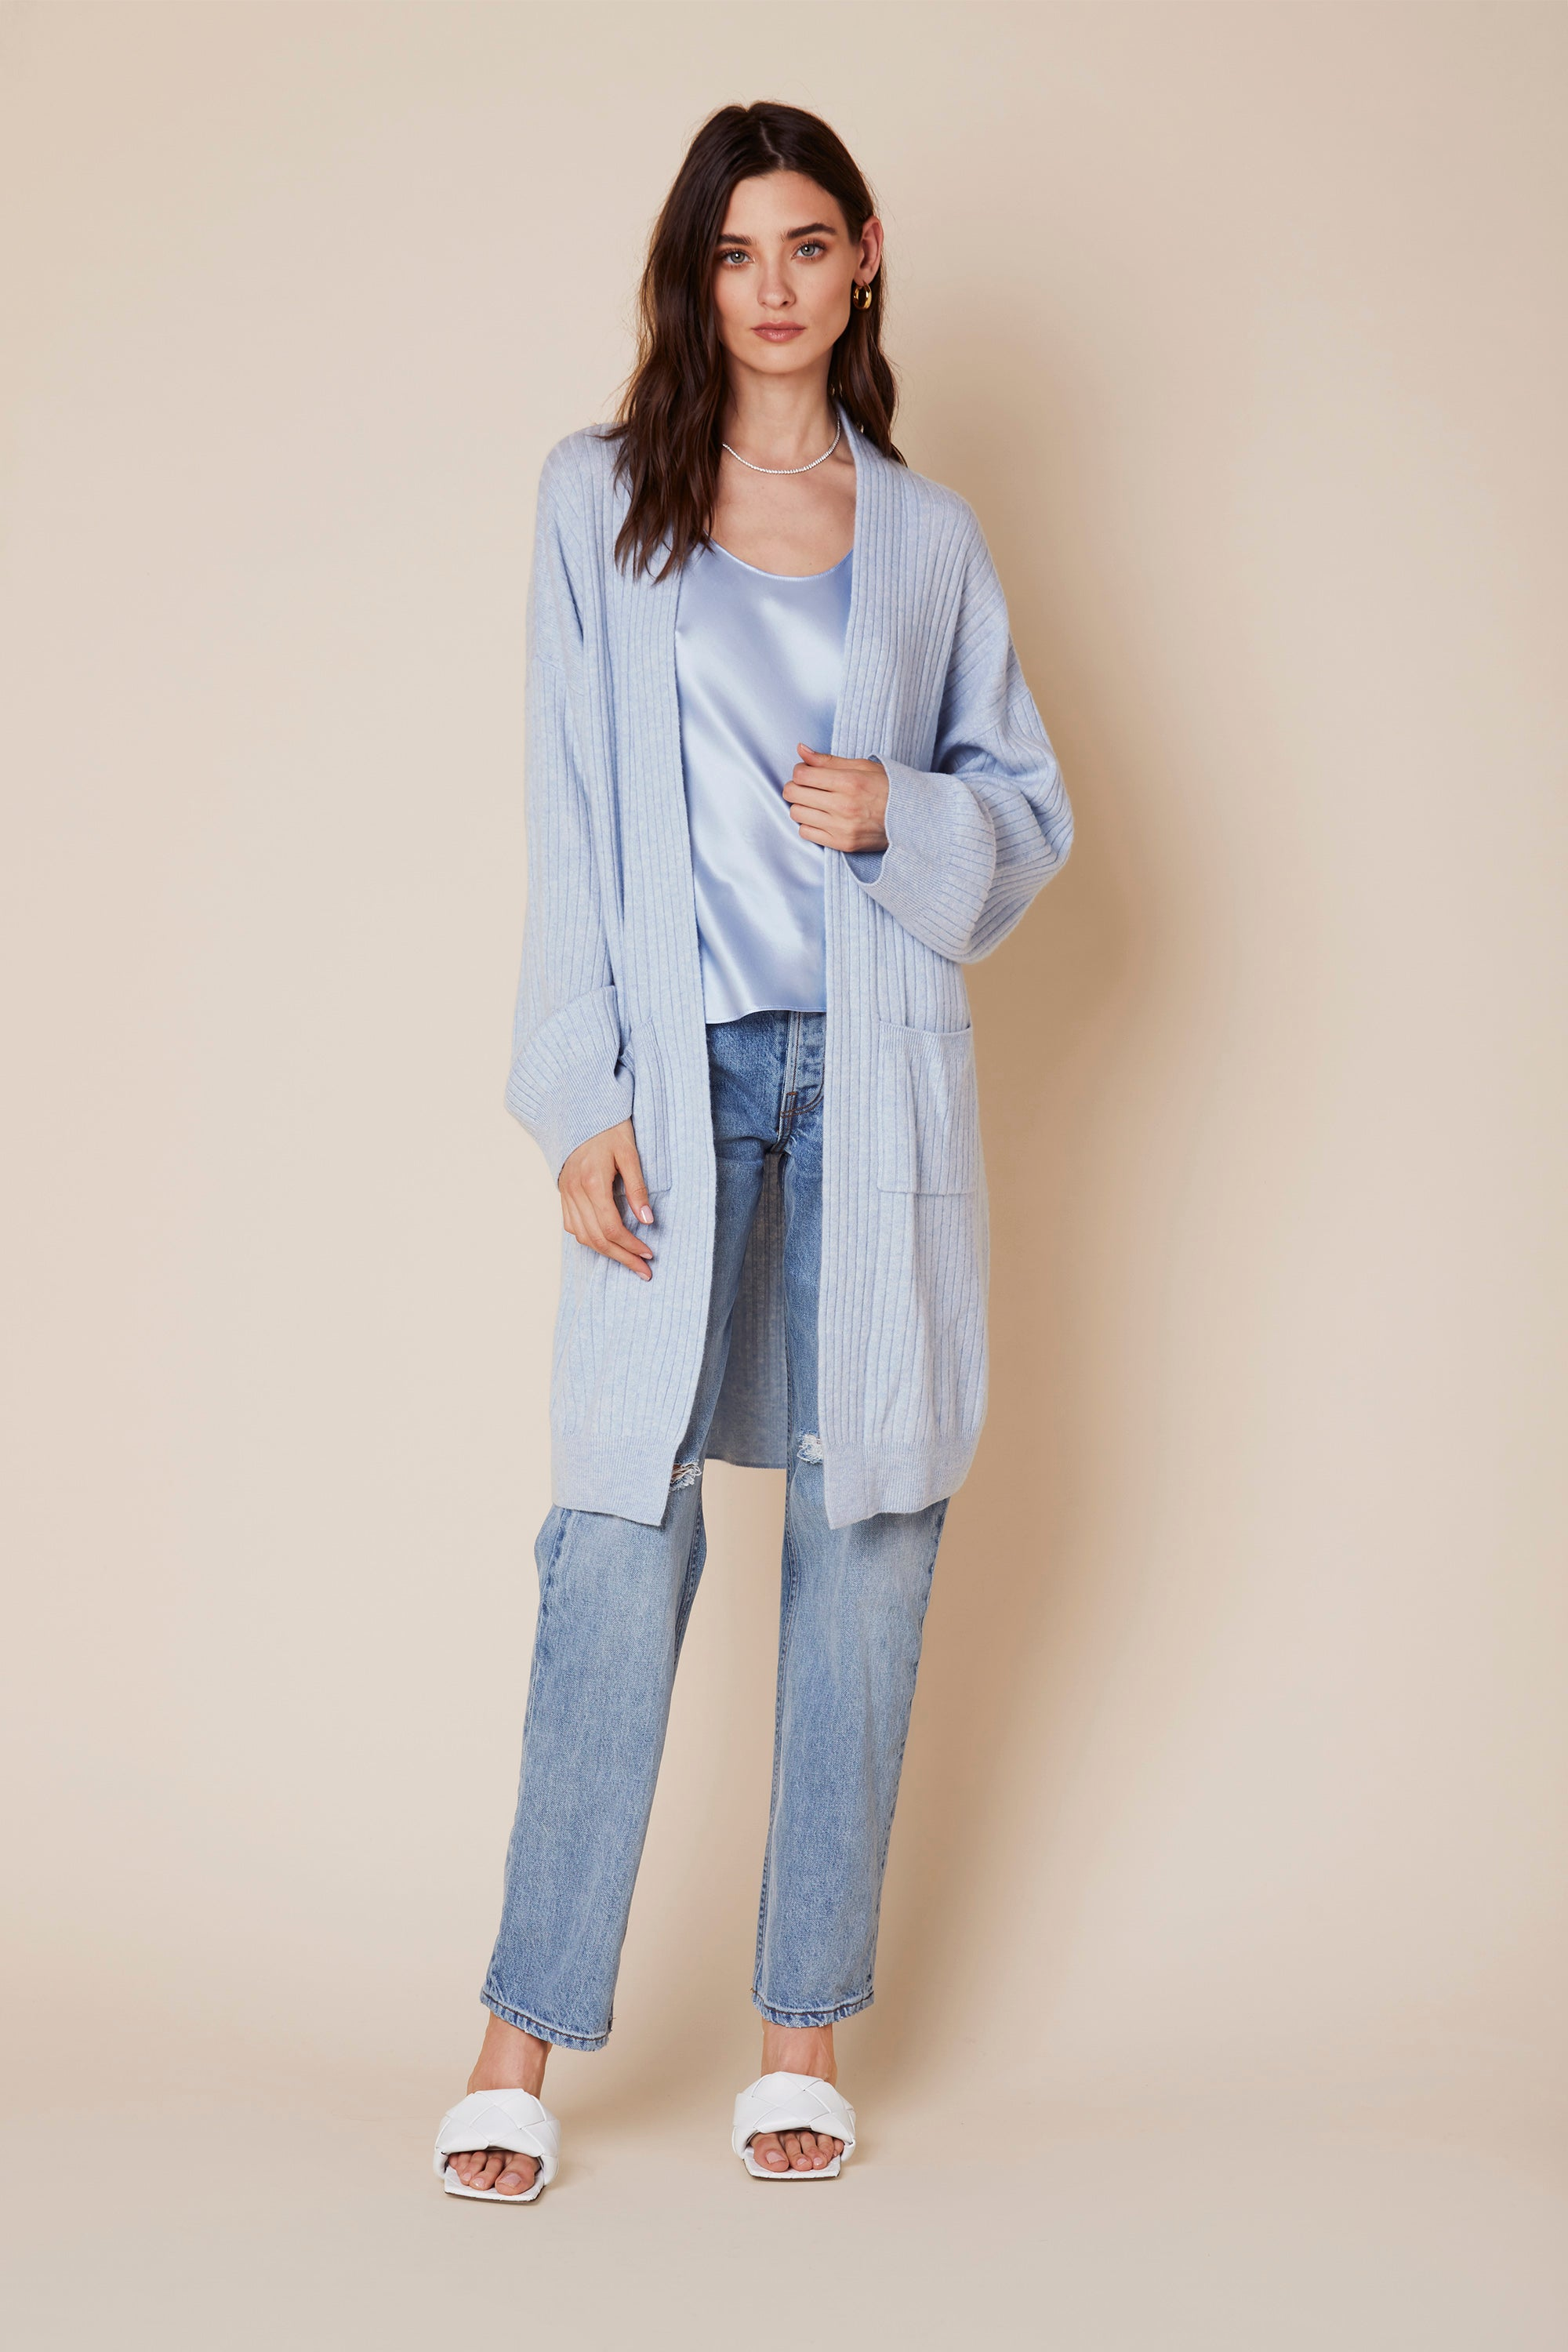 MAKENNA LONG CASHMERE SWEATER  | AZURE - Final Sale